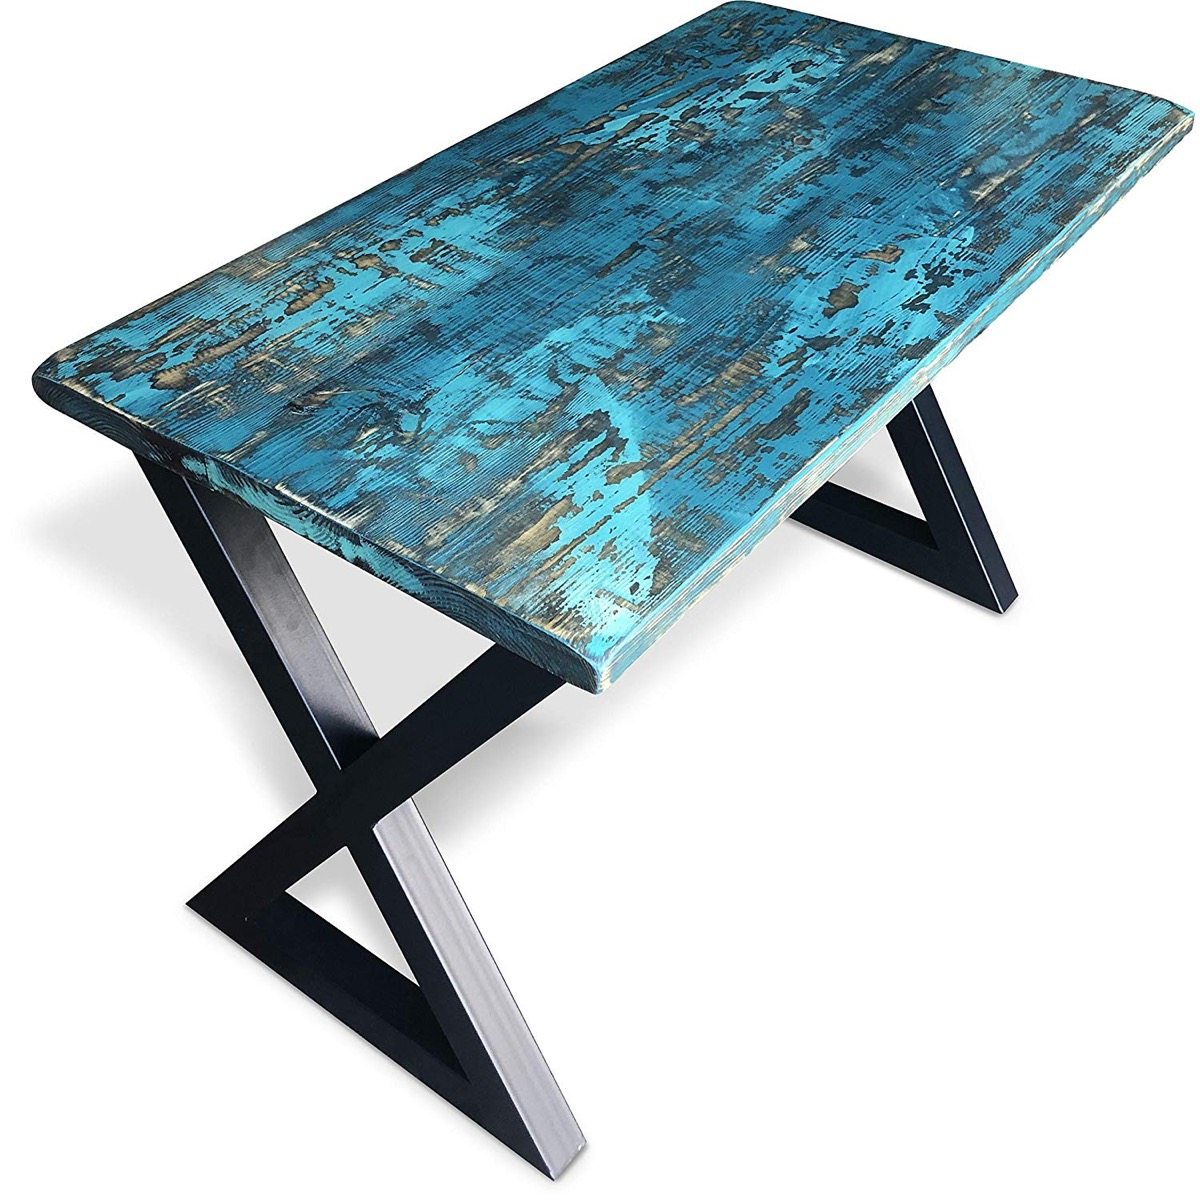 Teal Wood Desk {Handmade Items From Amazon}